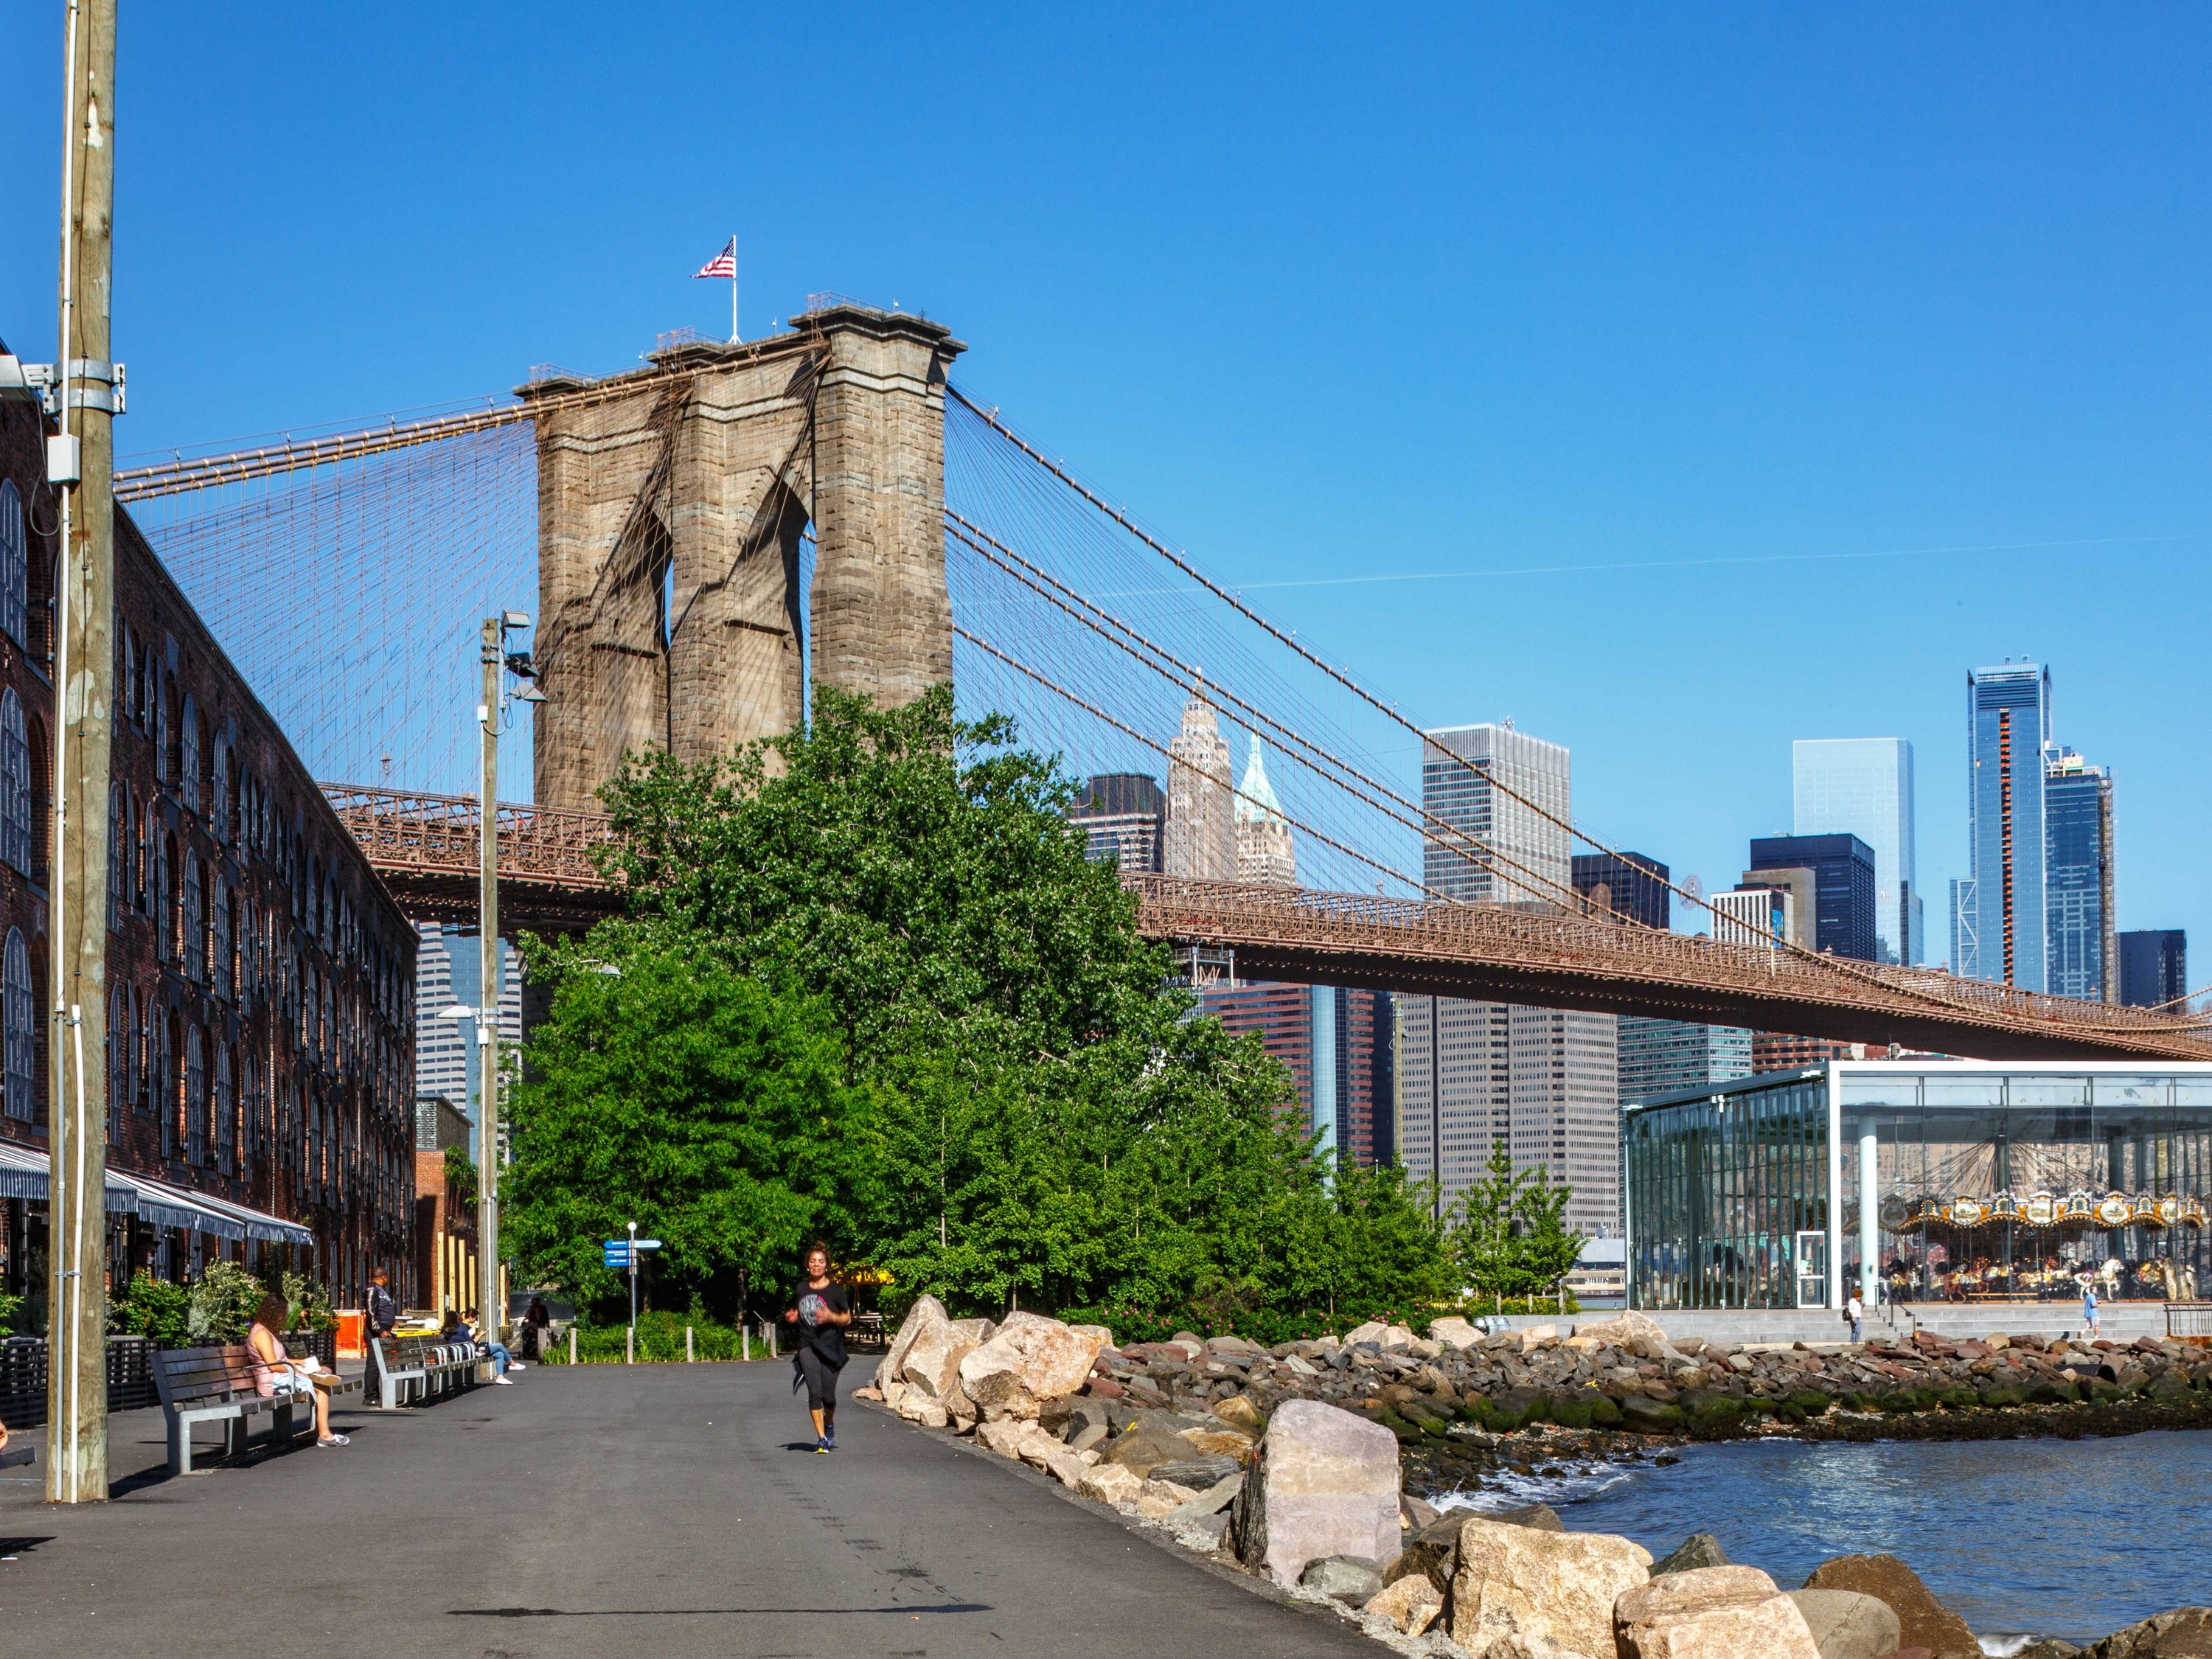 A two-acre green space is opening under the Brooklyn Bridge